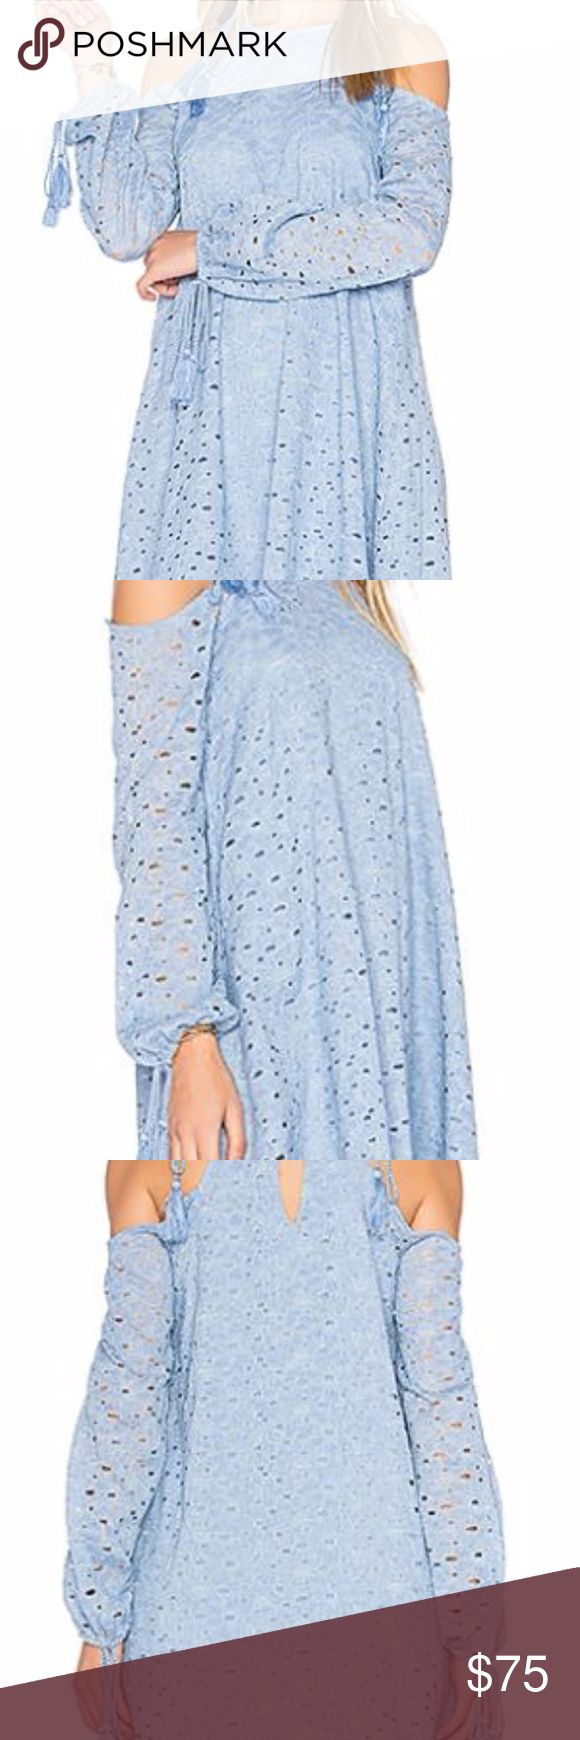 J.O.A. Blue Lace Cold Shoulder Dress Never worn, but tagless. Only selling because my arms are too big/not as slim as models, so it fits me weird. Currently being sold on revolve at $95 70% cotton , 30% nylon, Lining: 100% rayon Dry clean only Fully lined Braided tie shoulder straps with tassel accents Elasticized arm openings with tie accents Back keyhole with button closure Allover eyelet lace fabric…